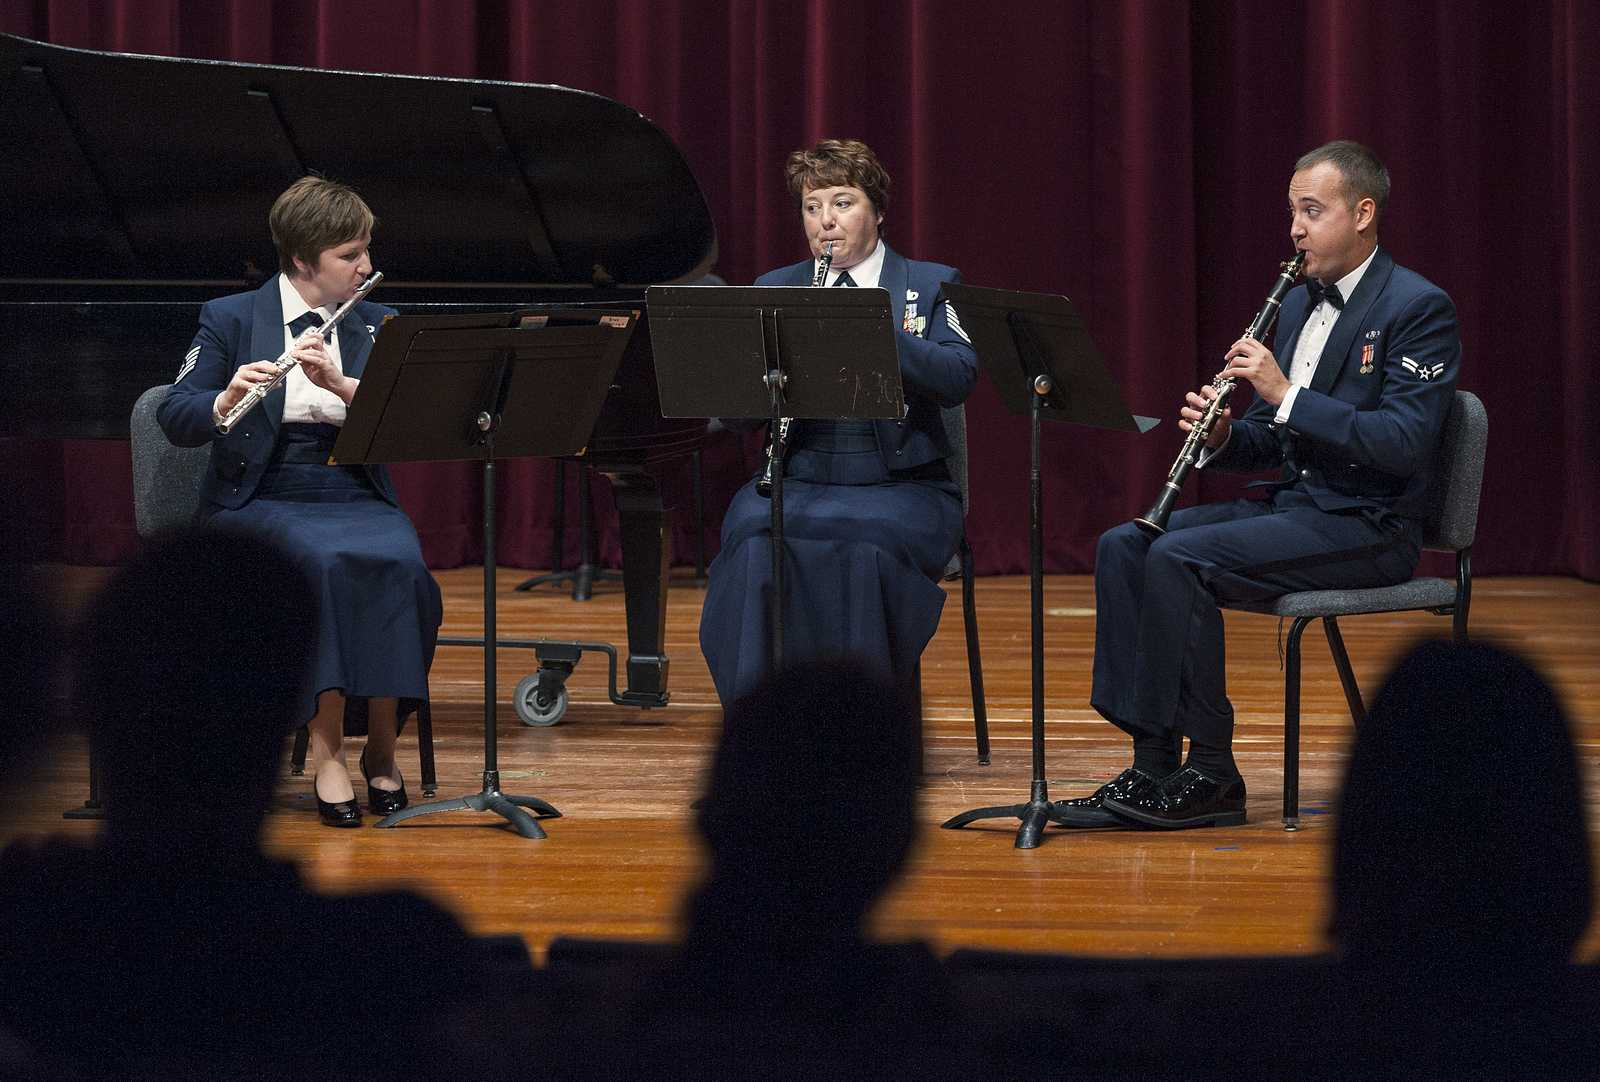 US Air Force band plays chamber recital in Knuth Hall